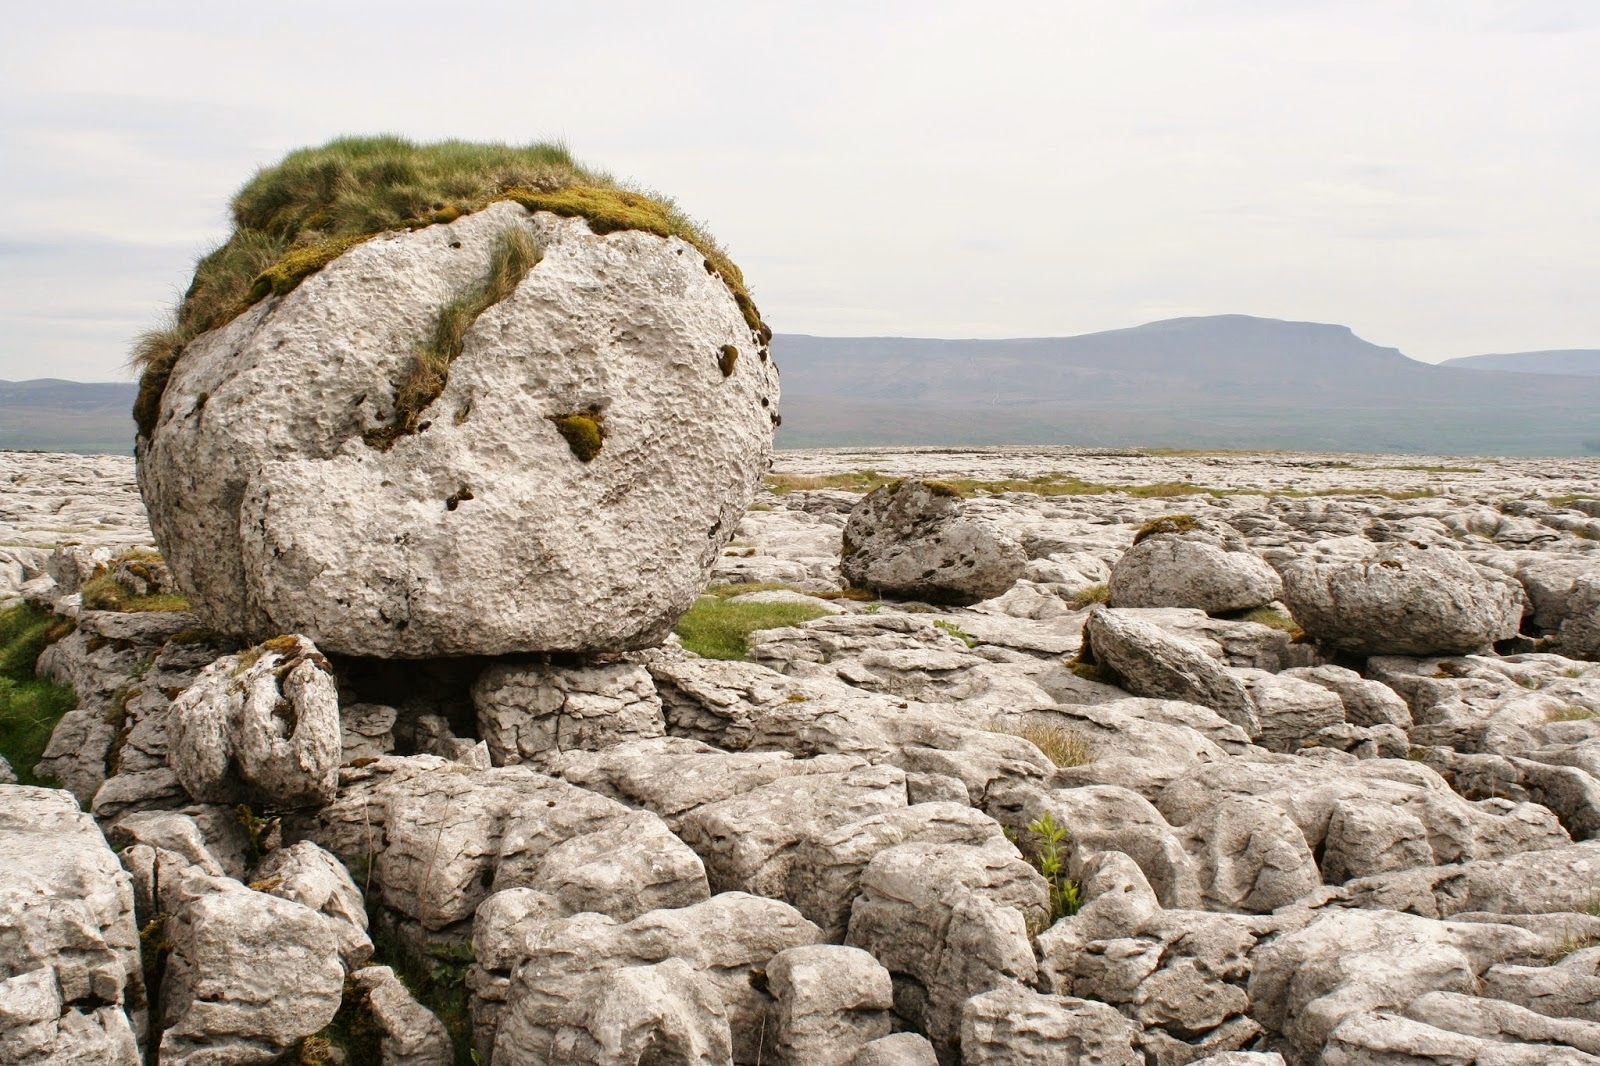 Glacially deposited limestone boulders on the pavements of Sulber Nick. Stephen Oldfield